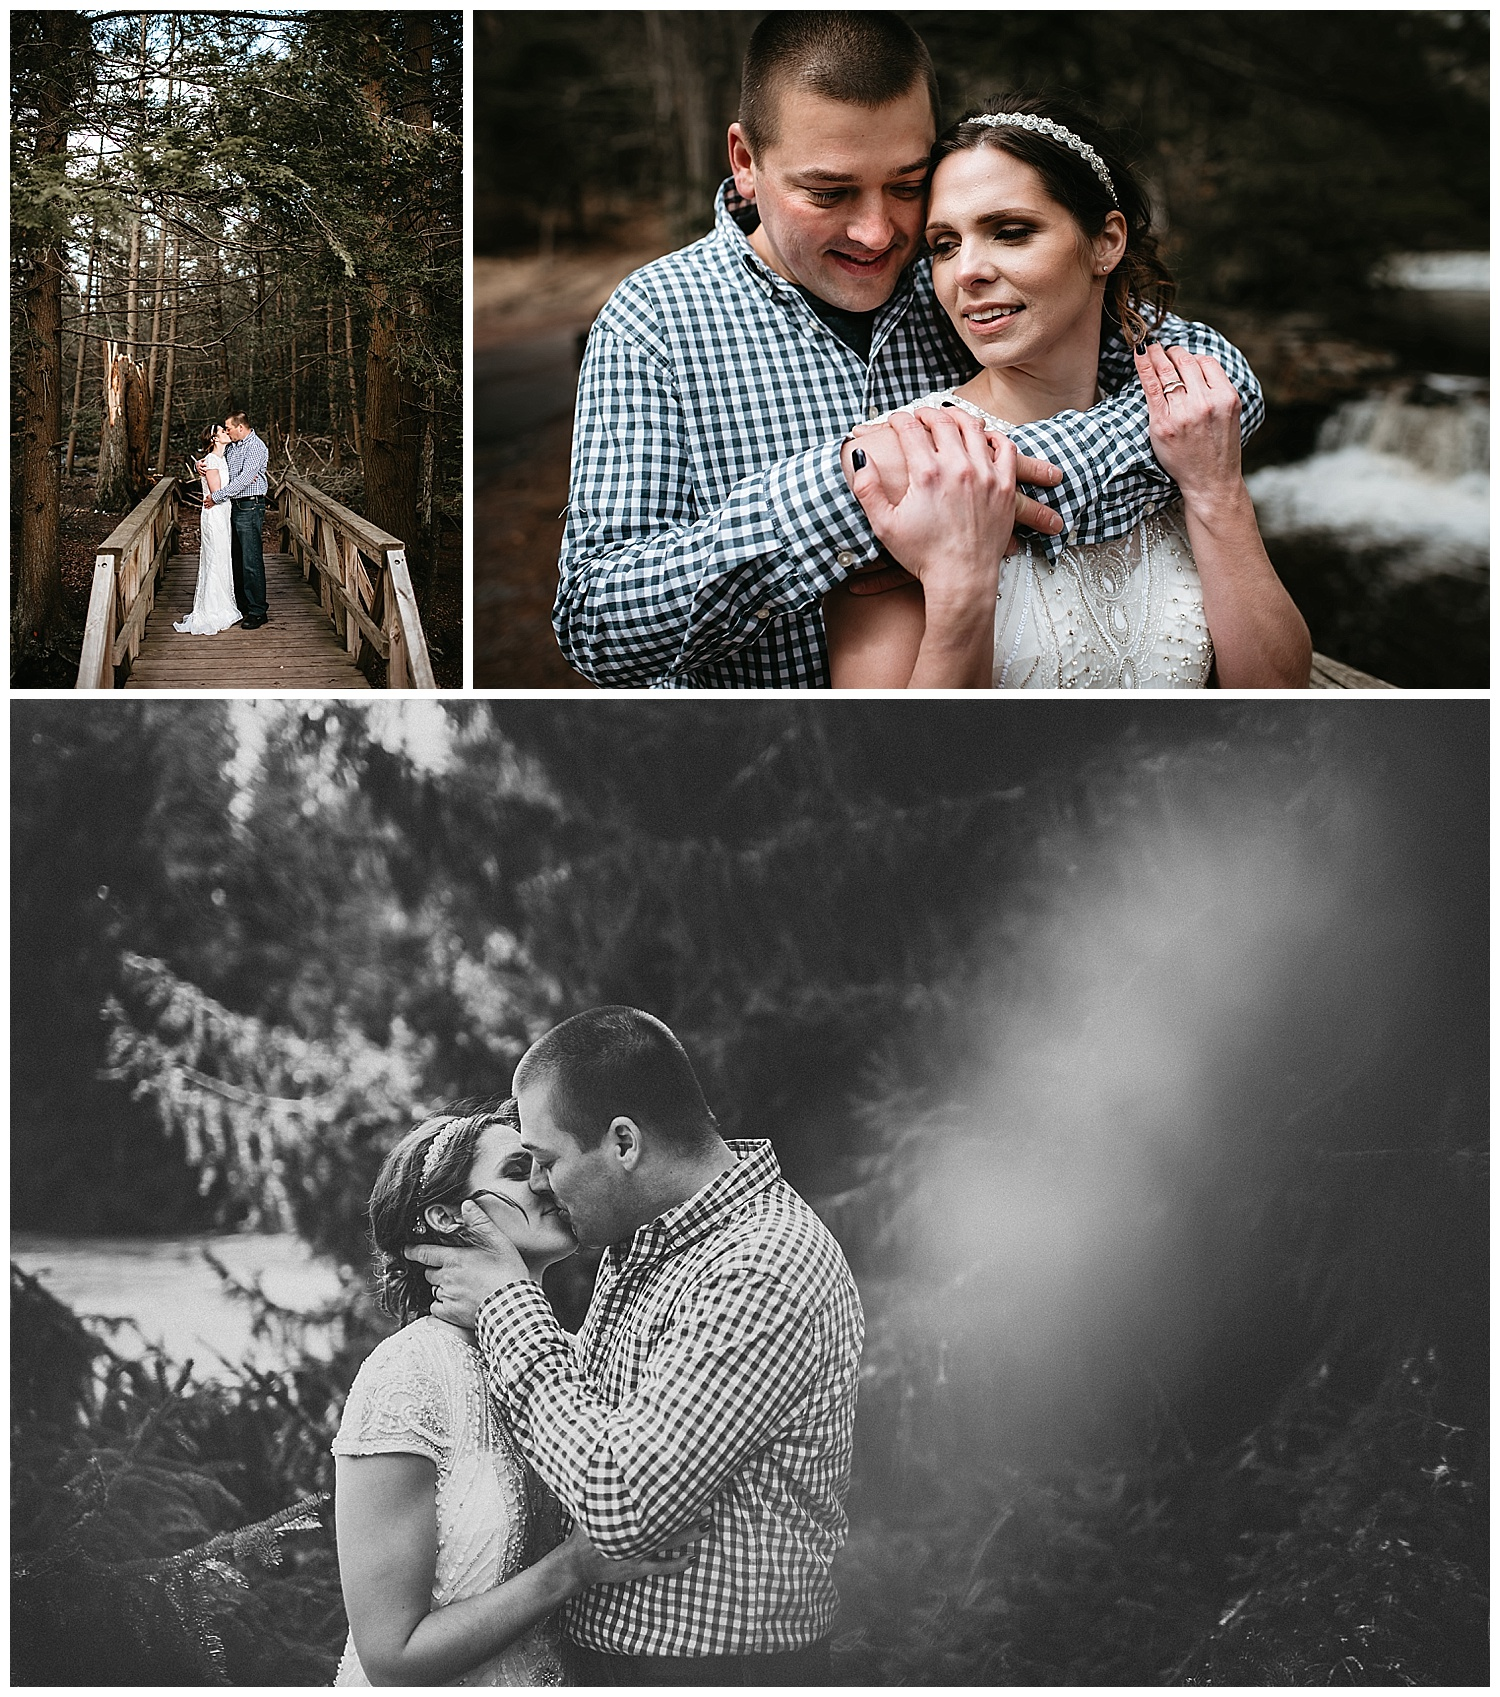 NEPA-Wedding-Engagement-photographer-hickory-run-state-park-hawk-falls-elopement_0026.jpg